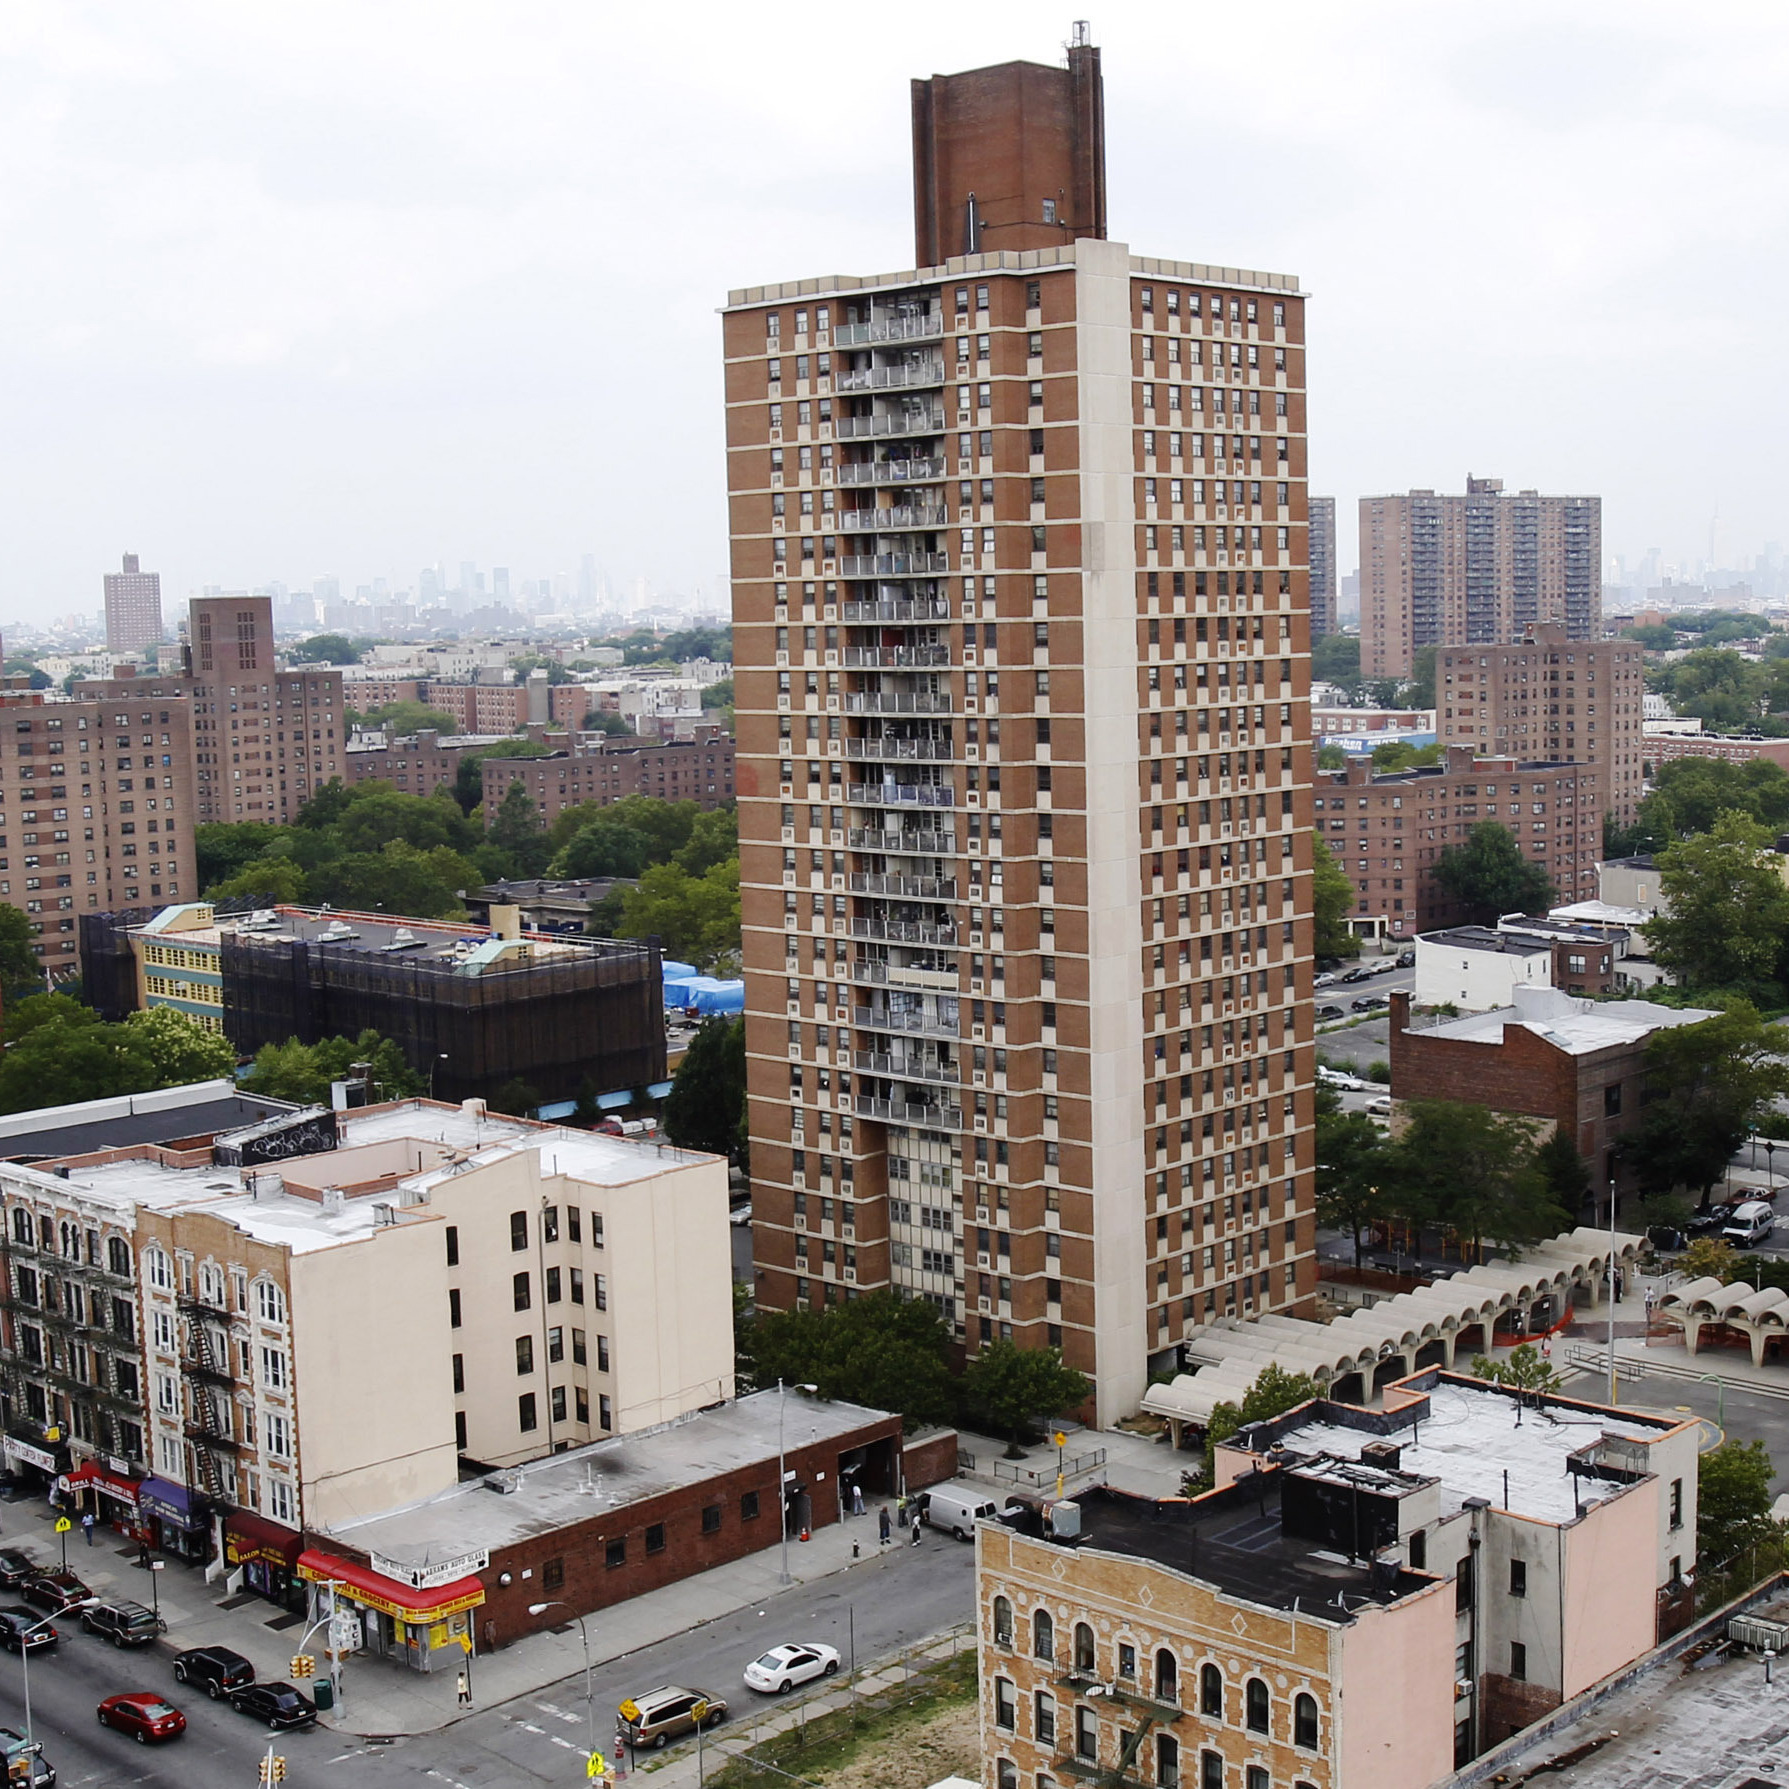 The Brownsville section of New York's Brooklyn borough has long been considered one of the city's most dangerous neighborhoods. The Brooklyn-based Justice Mapping Center has been tracking the cost of incarceration in neighborhoods like Brownsville, block by block, for almost 15 years.